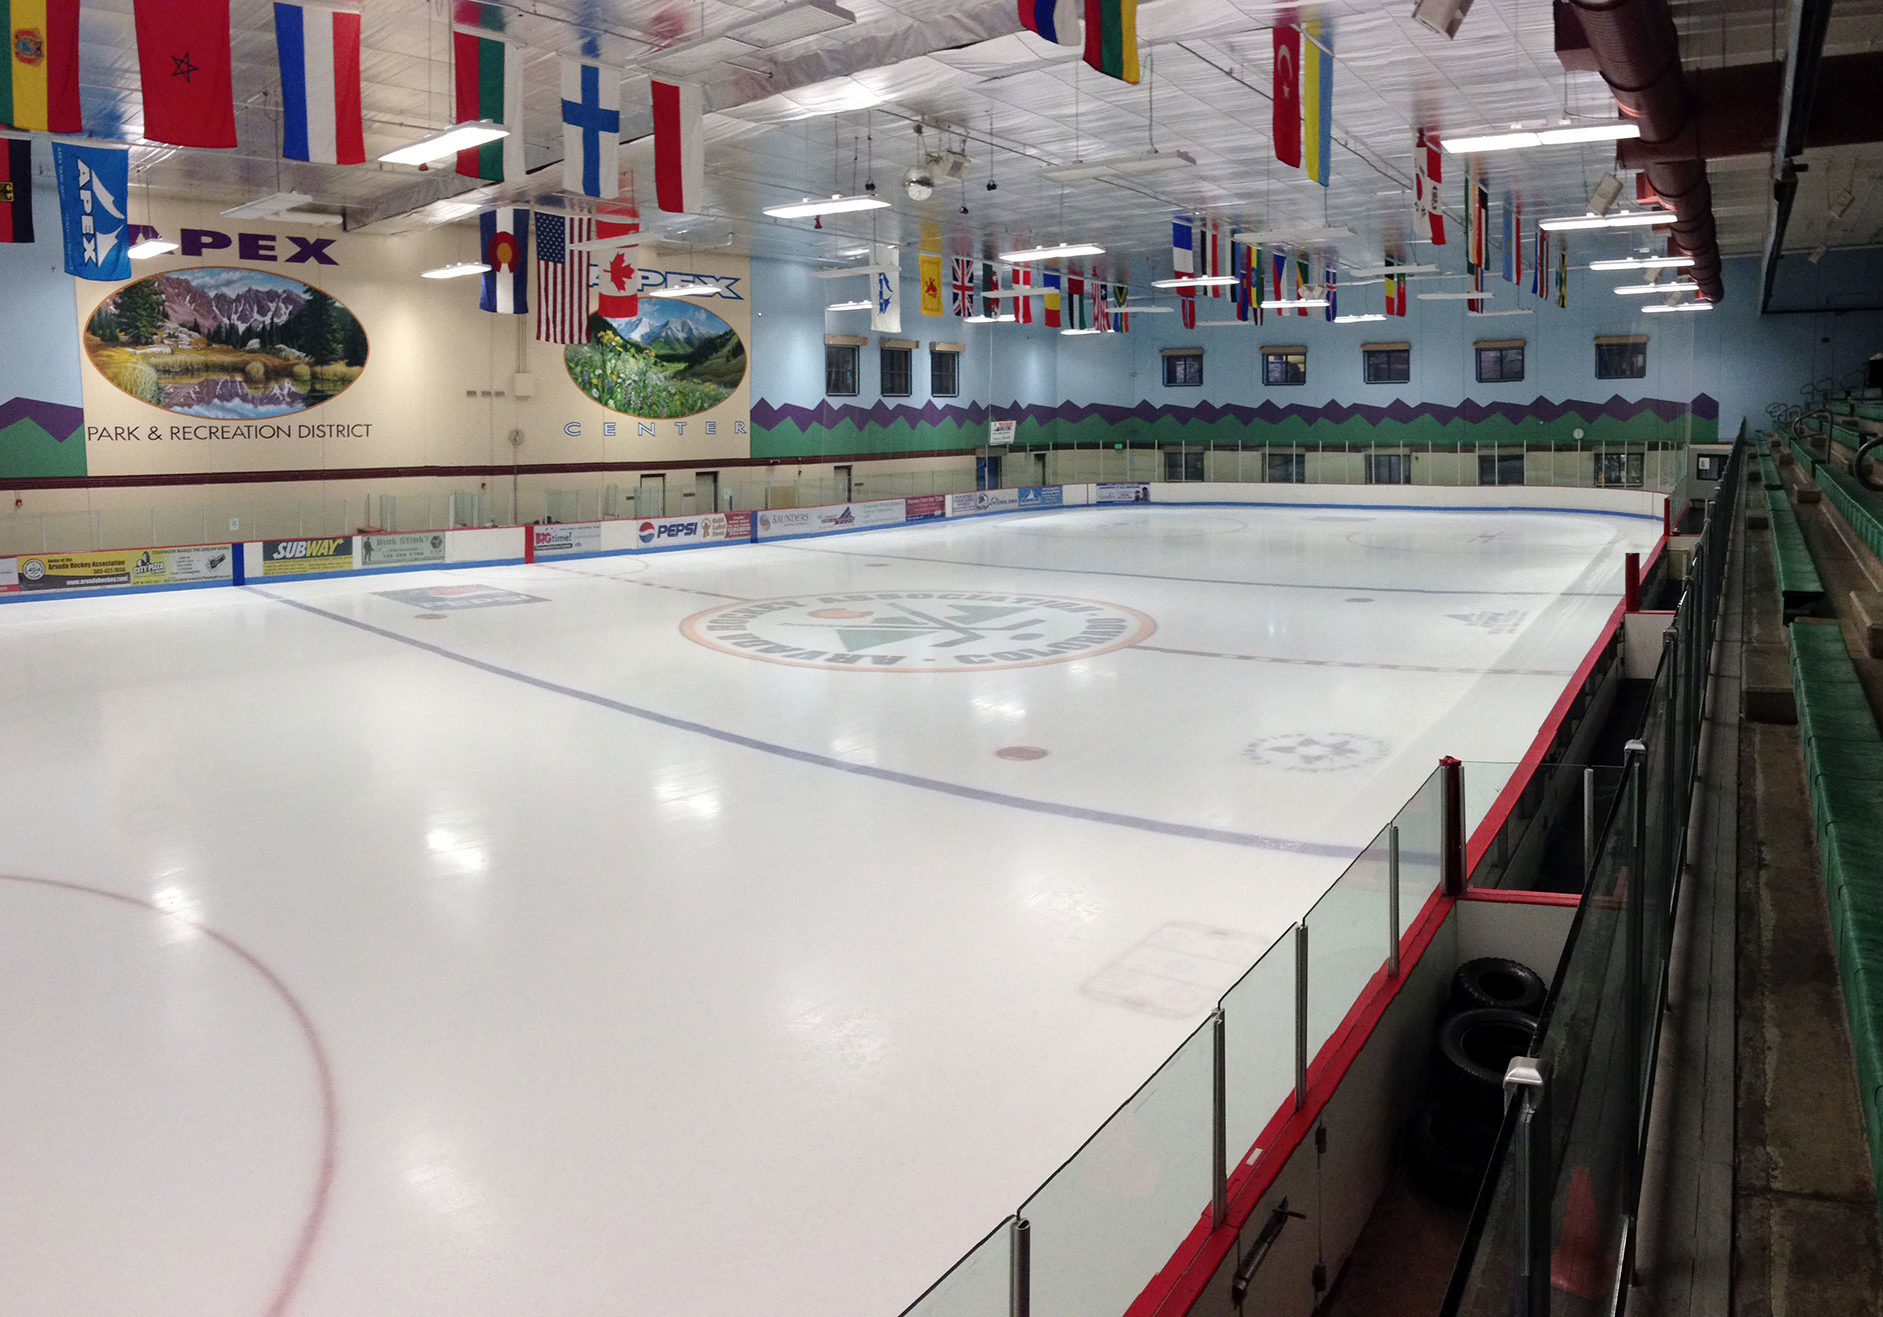 West Rink